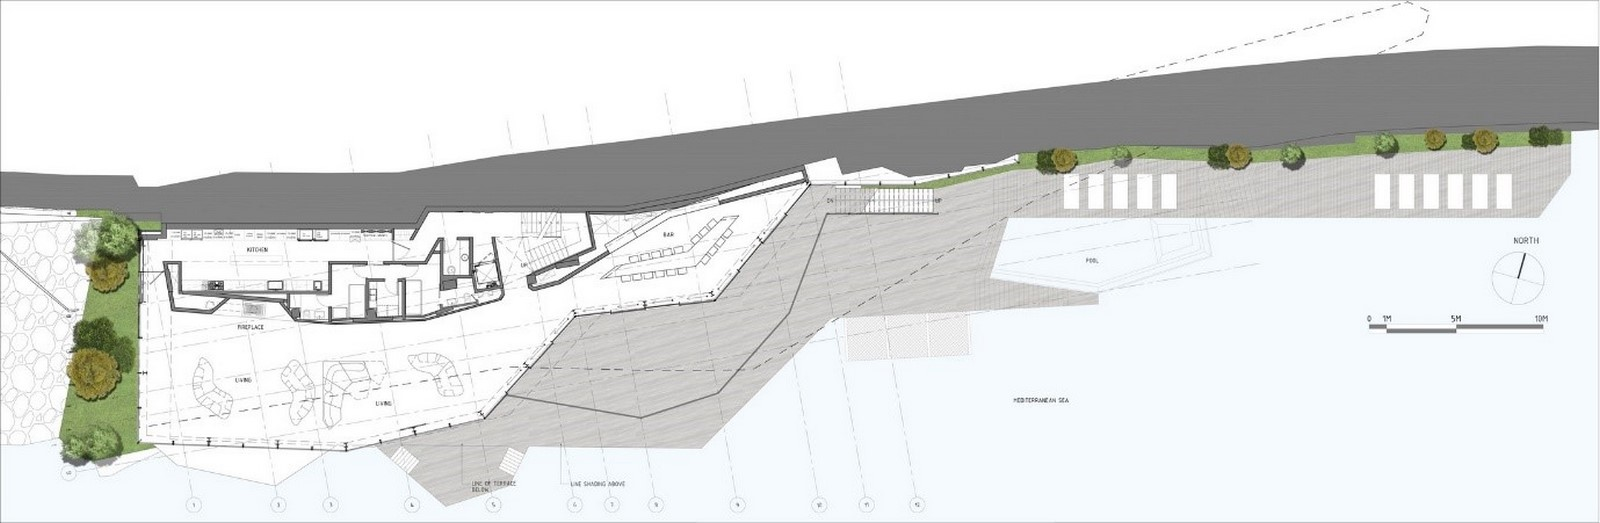 Sculpted House Hovering Over the Mediterranean by SOMA:Floating Houses - Sheet6